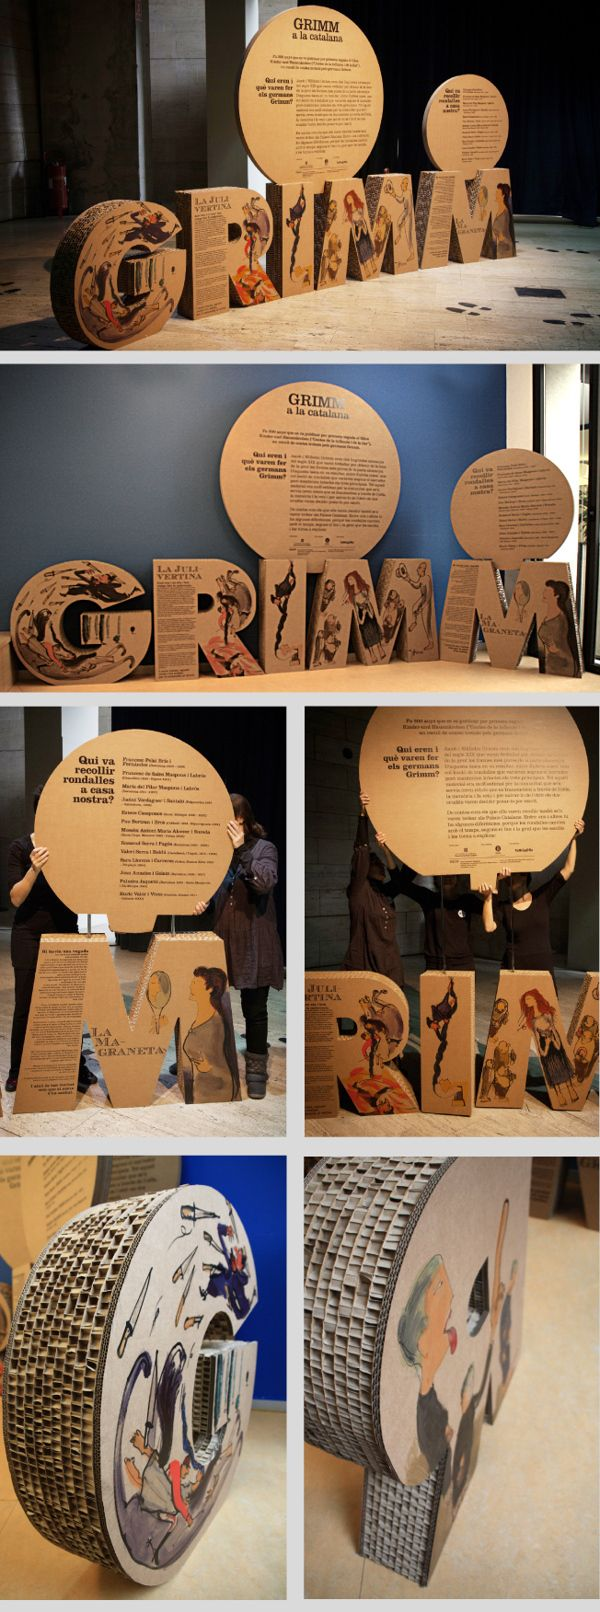 Grimm by Núria Farrés, via Behance. A brilliant use of printed board for art!